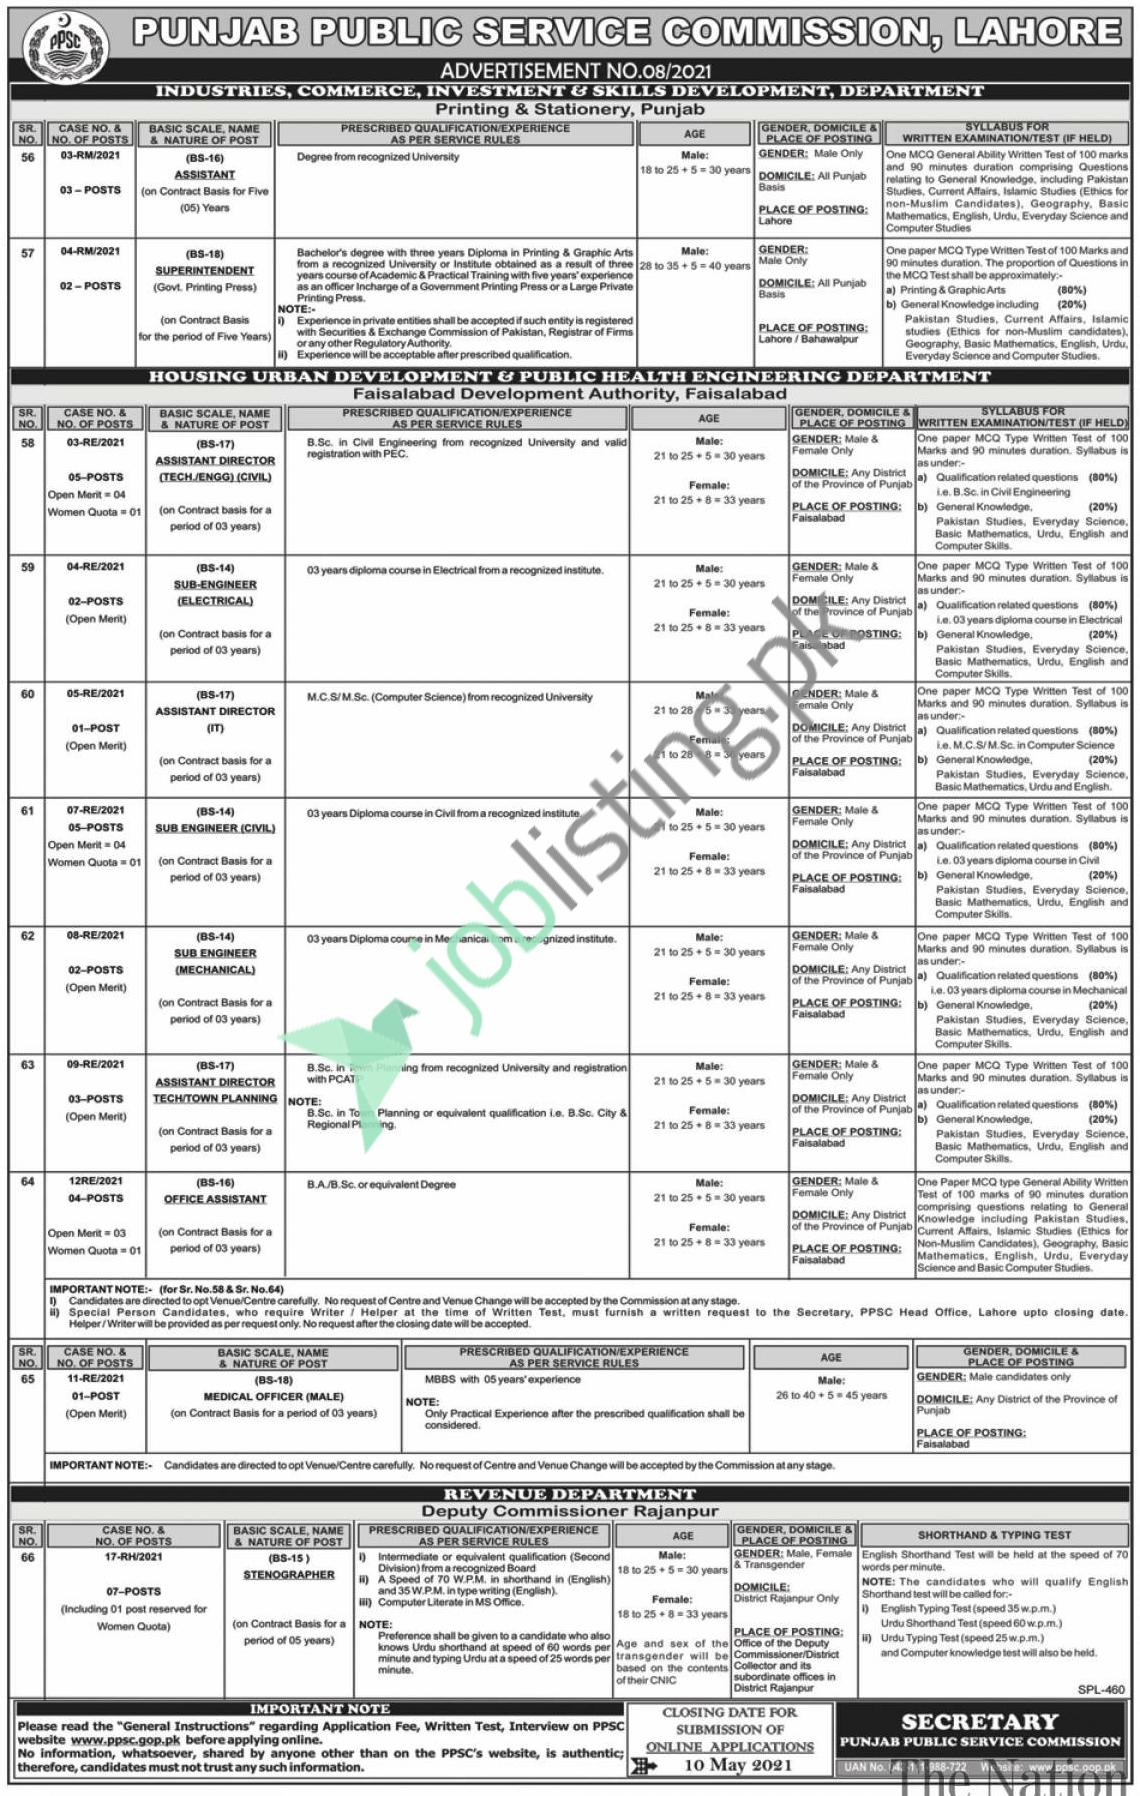 Situations Vacant - PPSC Punjab Public Service Commission - Old Test Paper & Syllabus Pattern